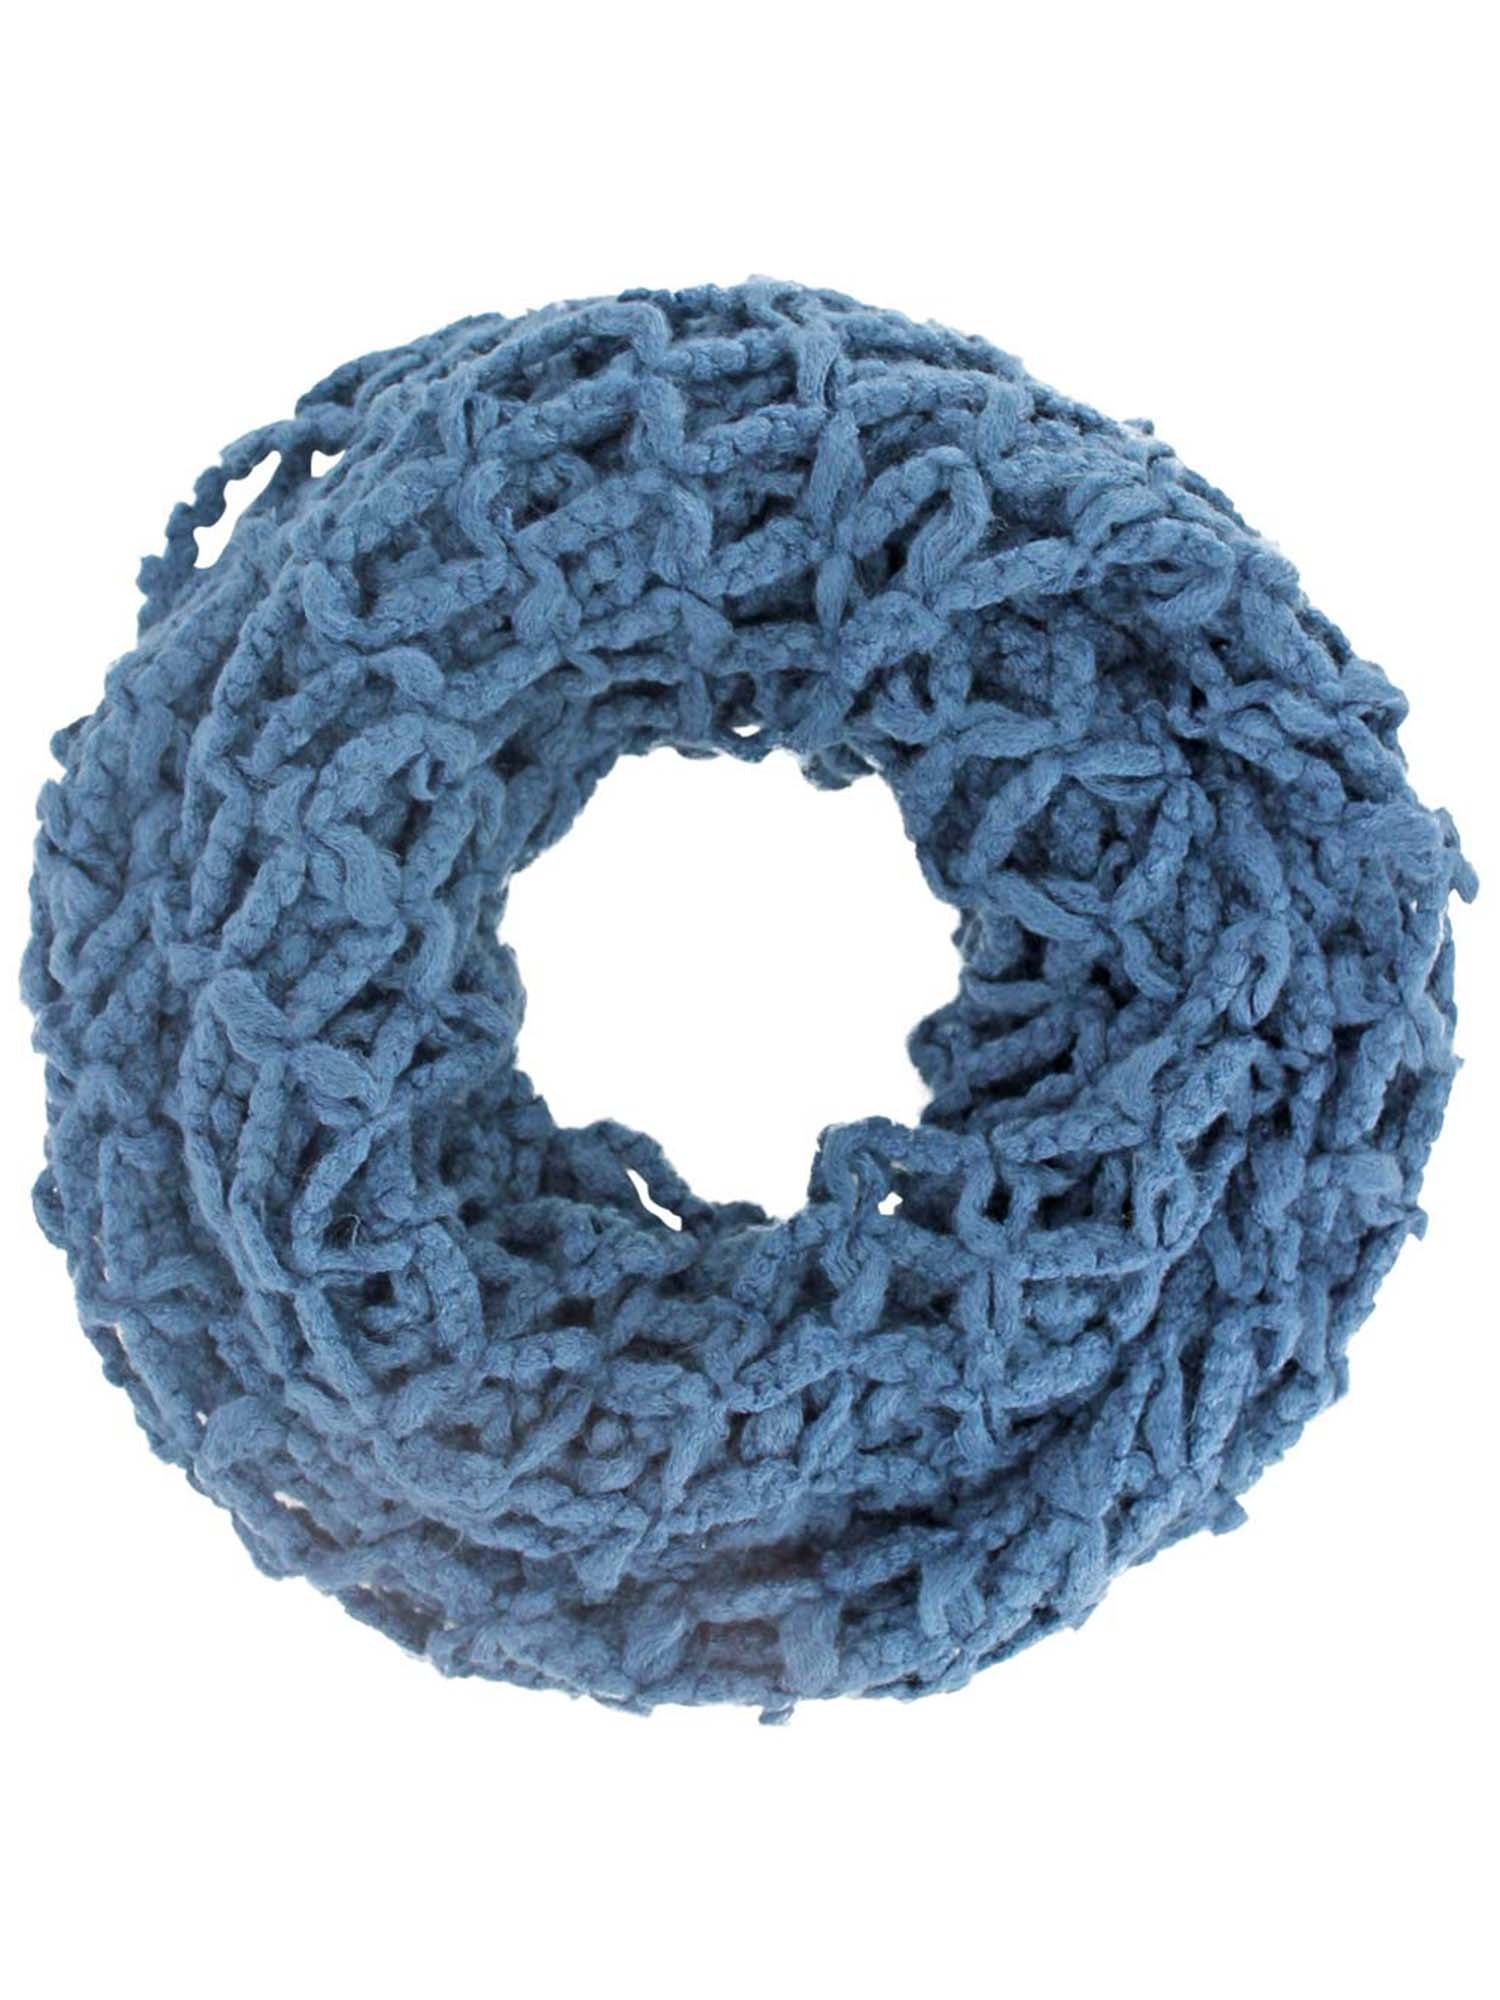 Open Caged Knit Winter Infinity Scarf